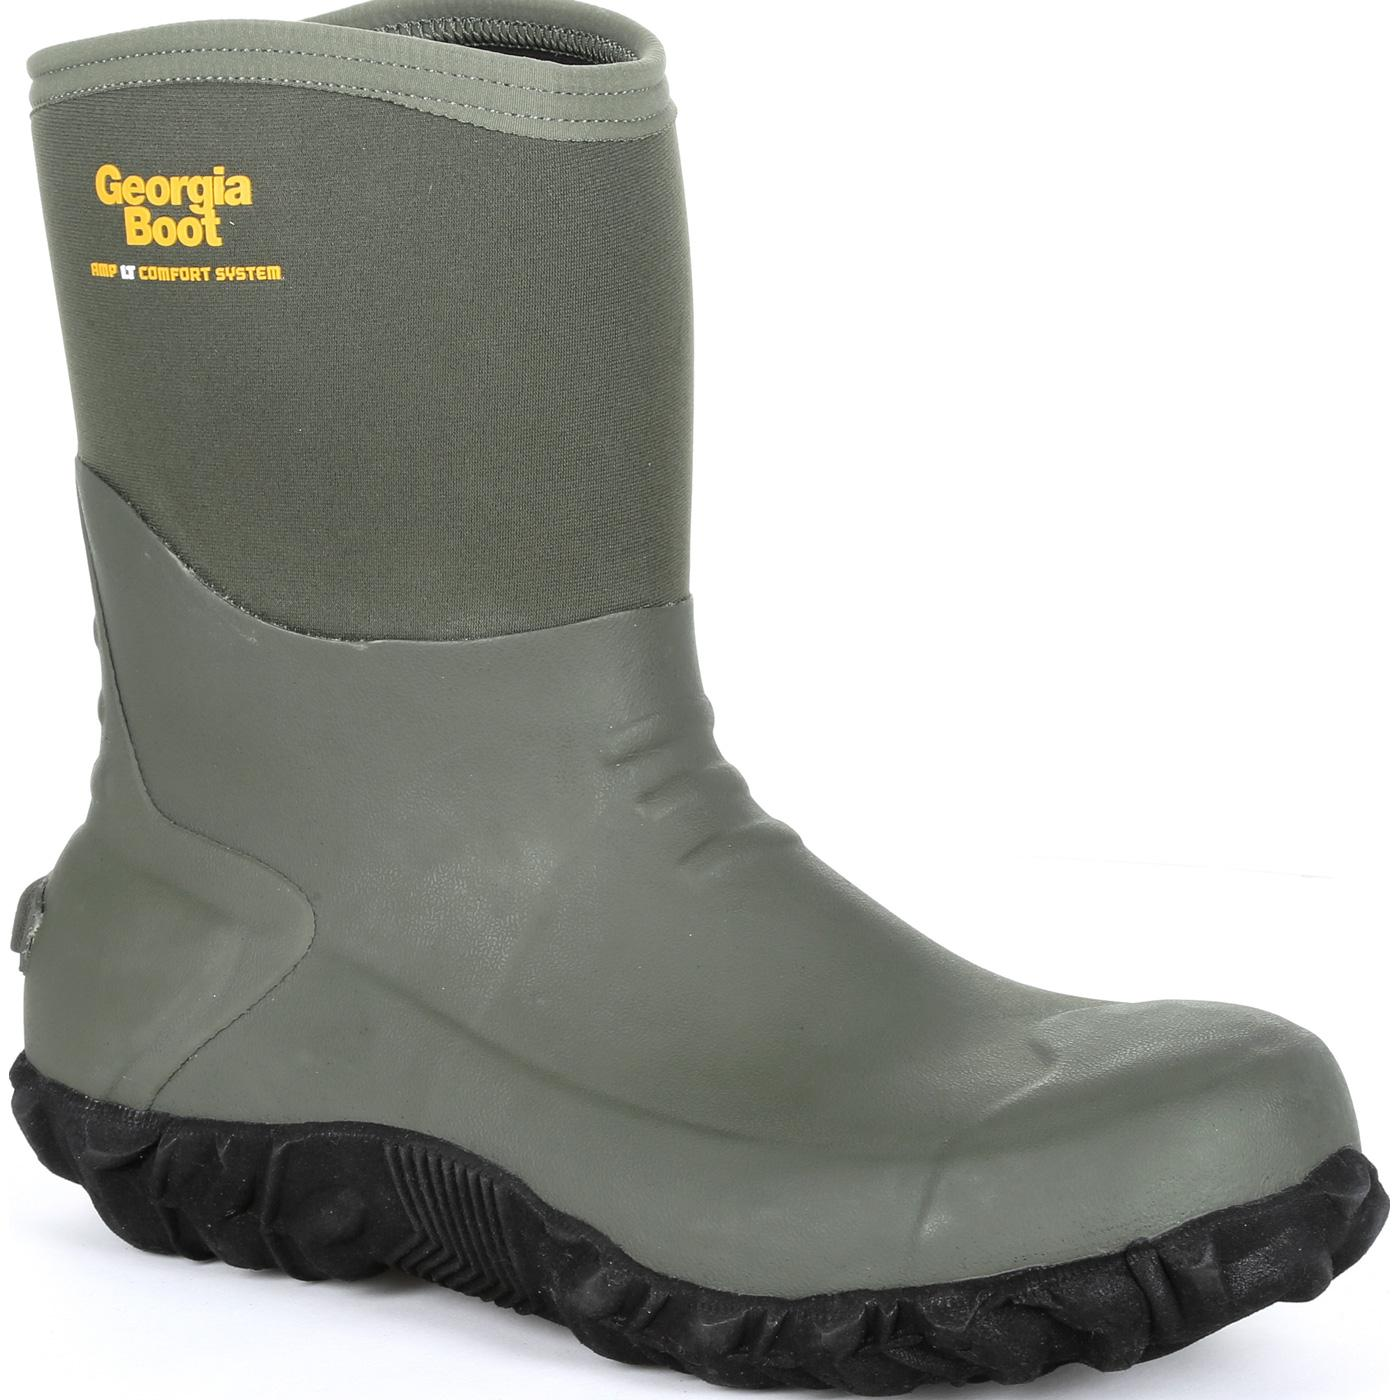 Georgia Boot Waterproof Mid Rubber Boot Gb00231